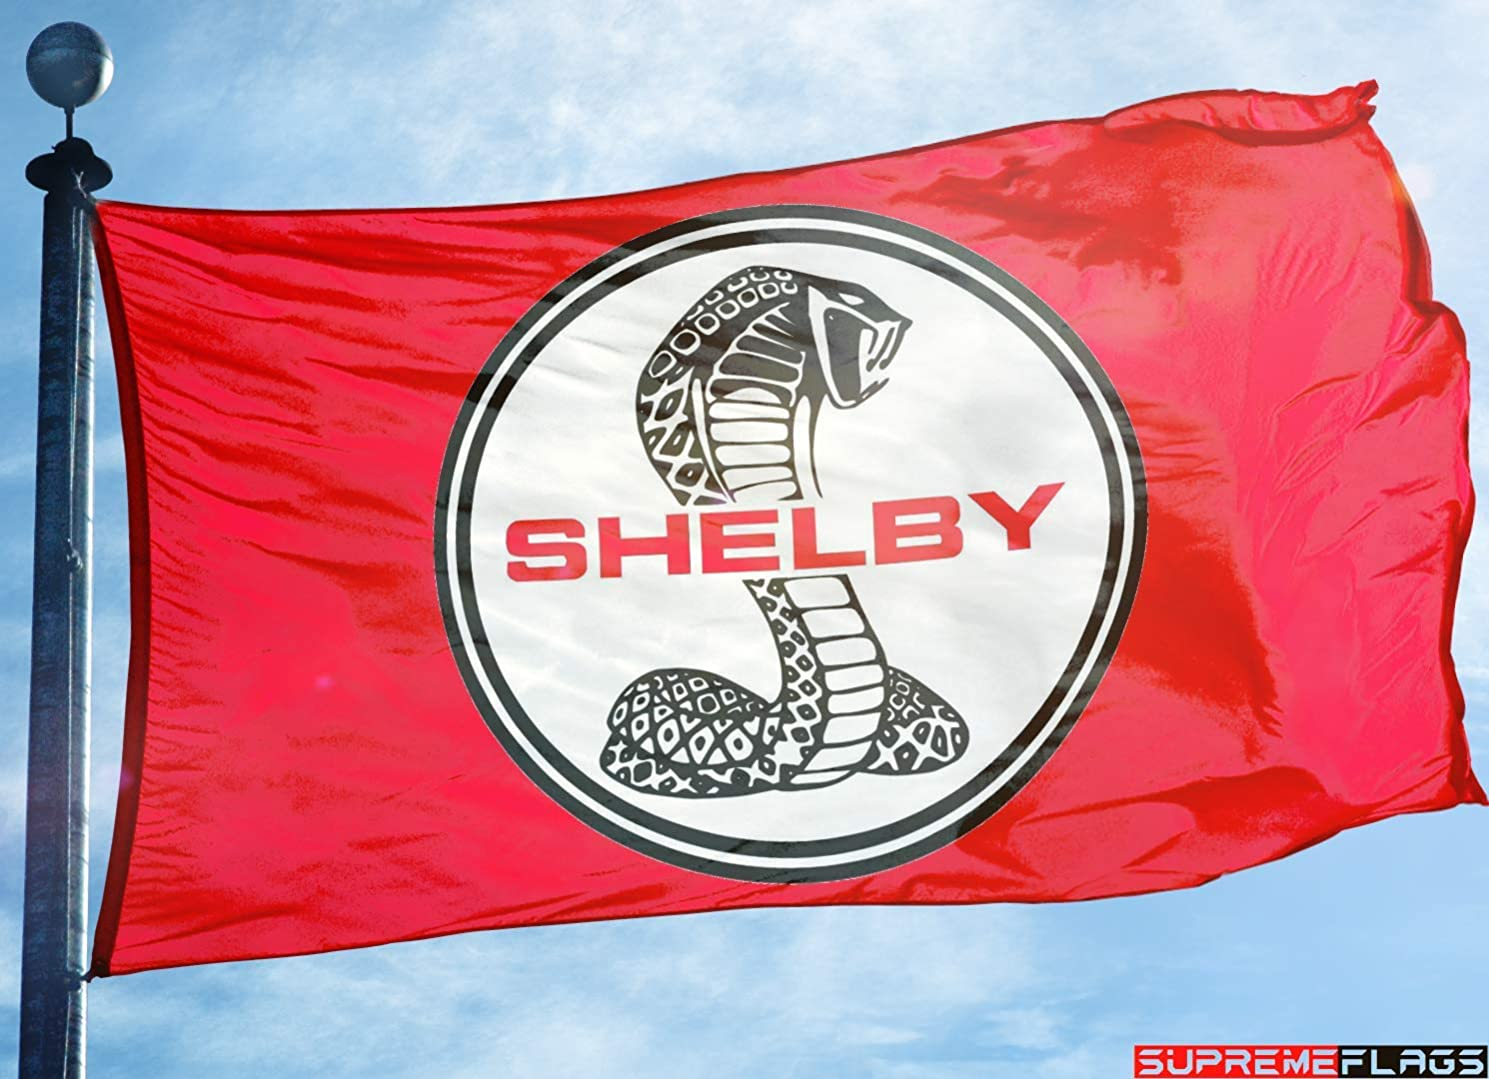 Shelby Cobra Flag Banner 3x5 ft Motorsport Car Racing Red